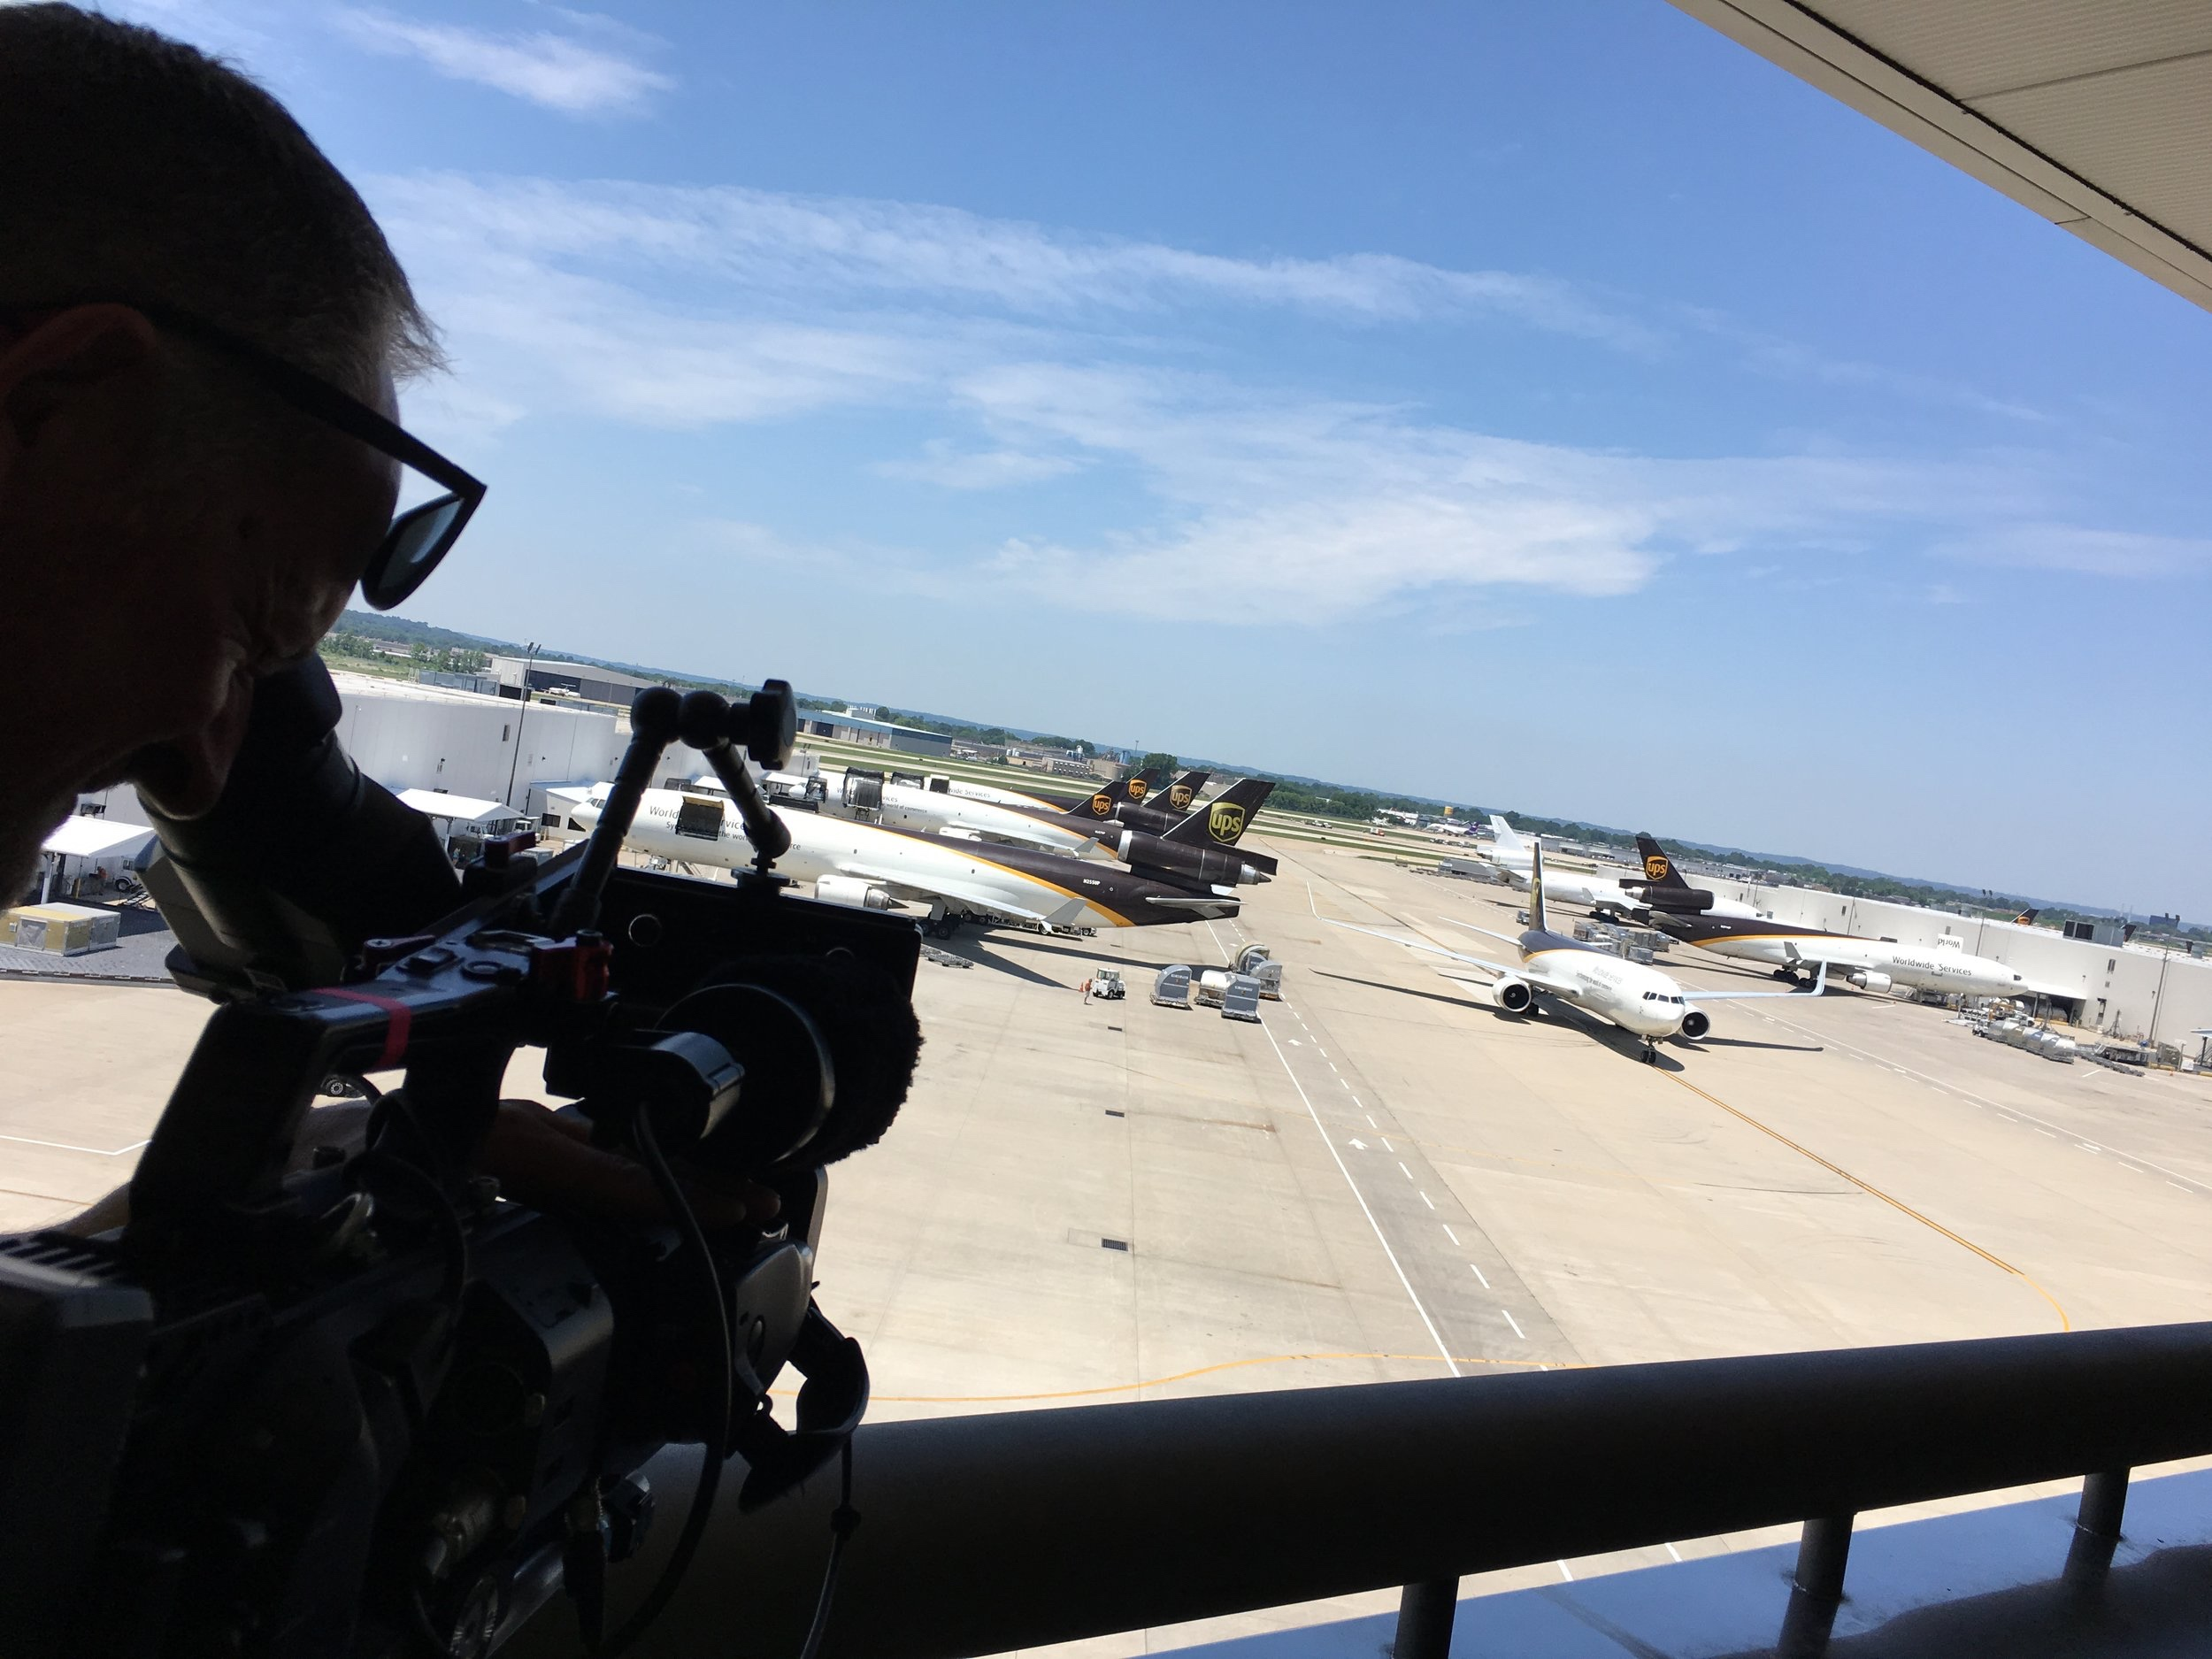 ups worldport - WELT/Discovery Channel